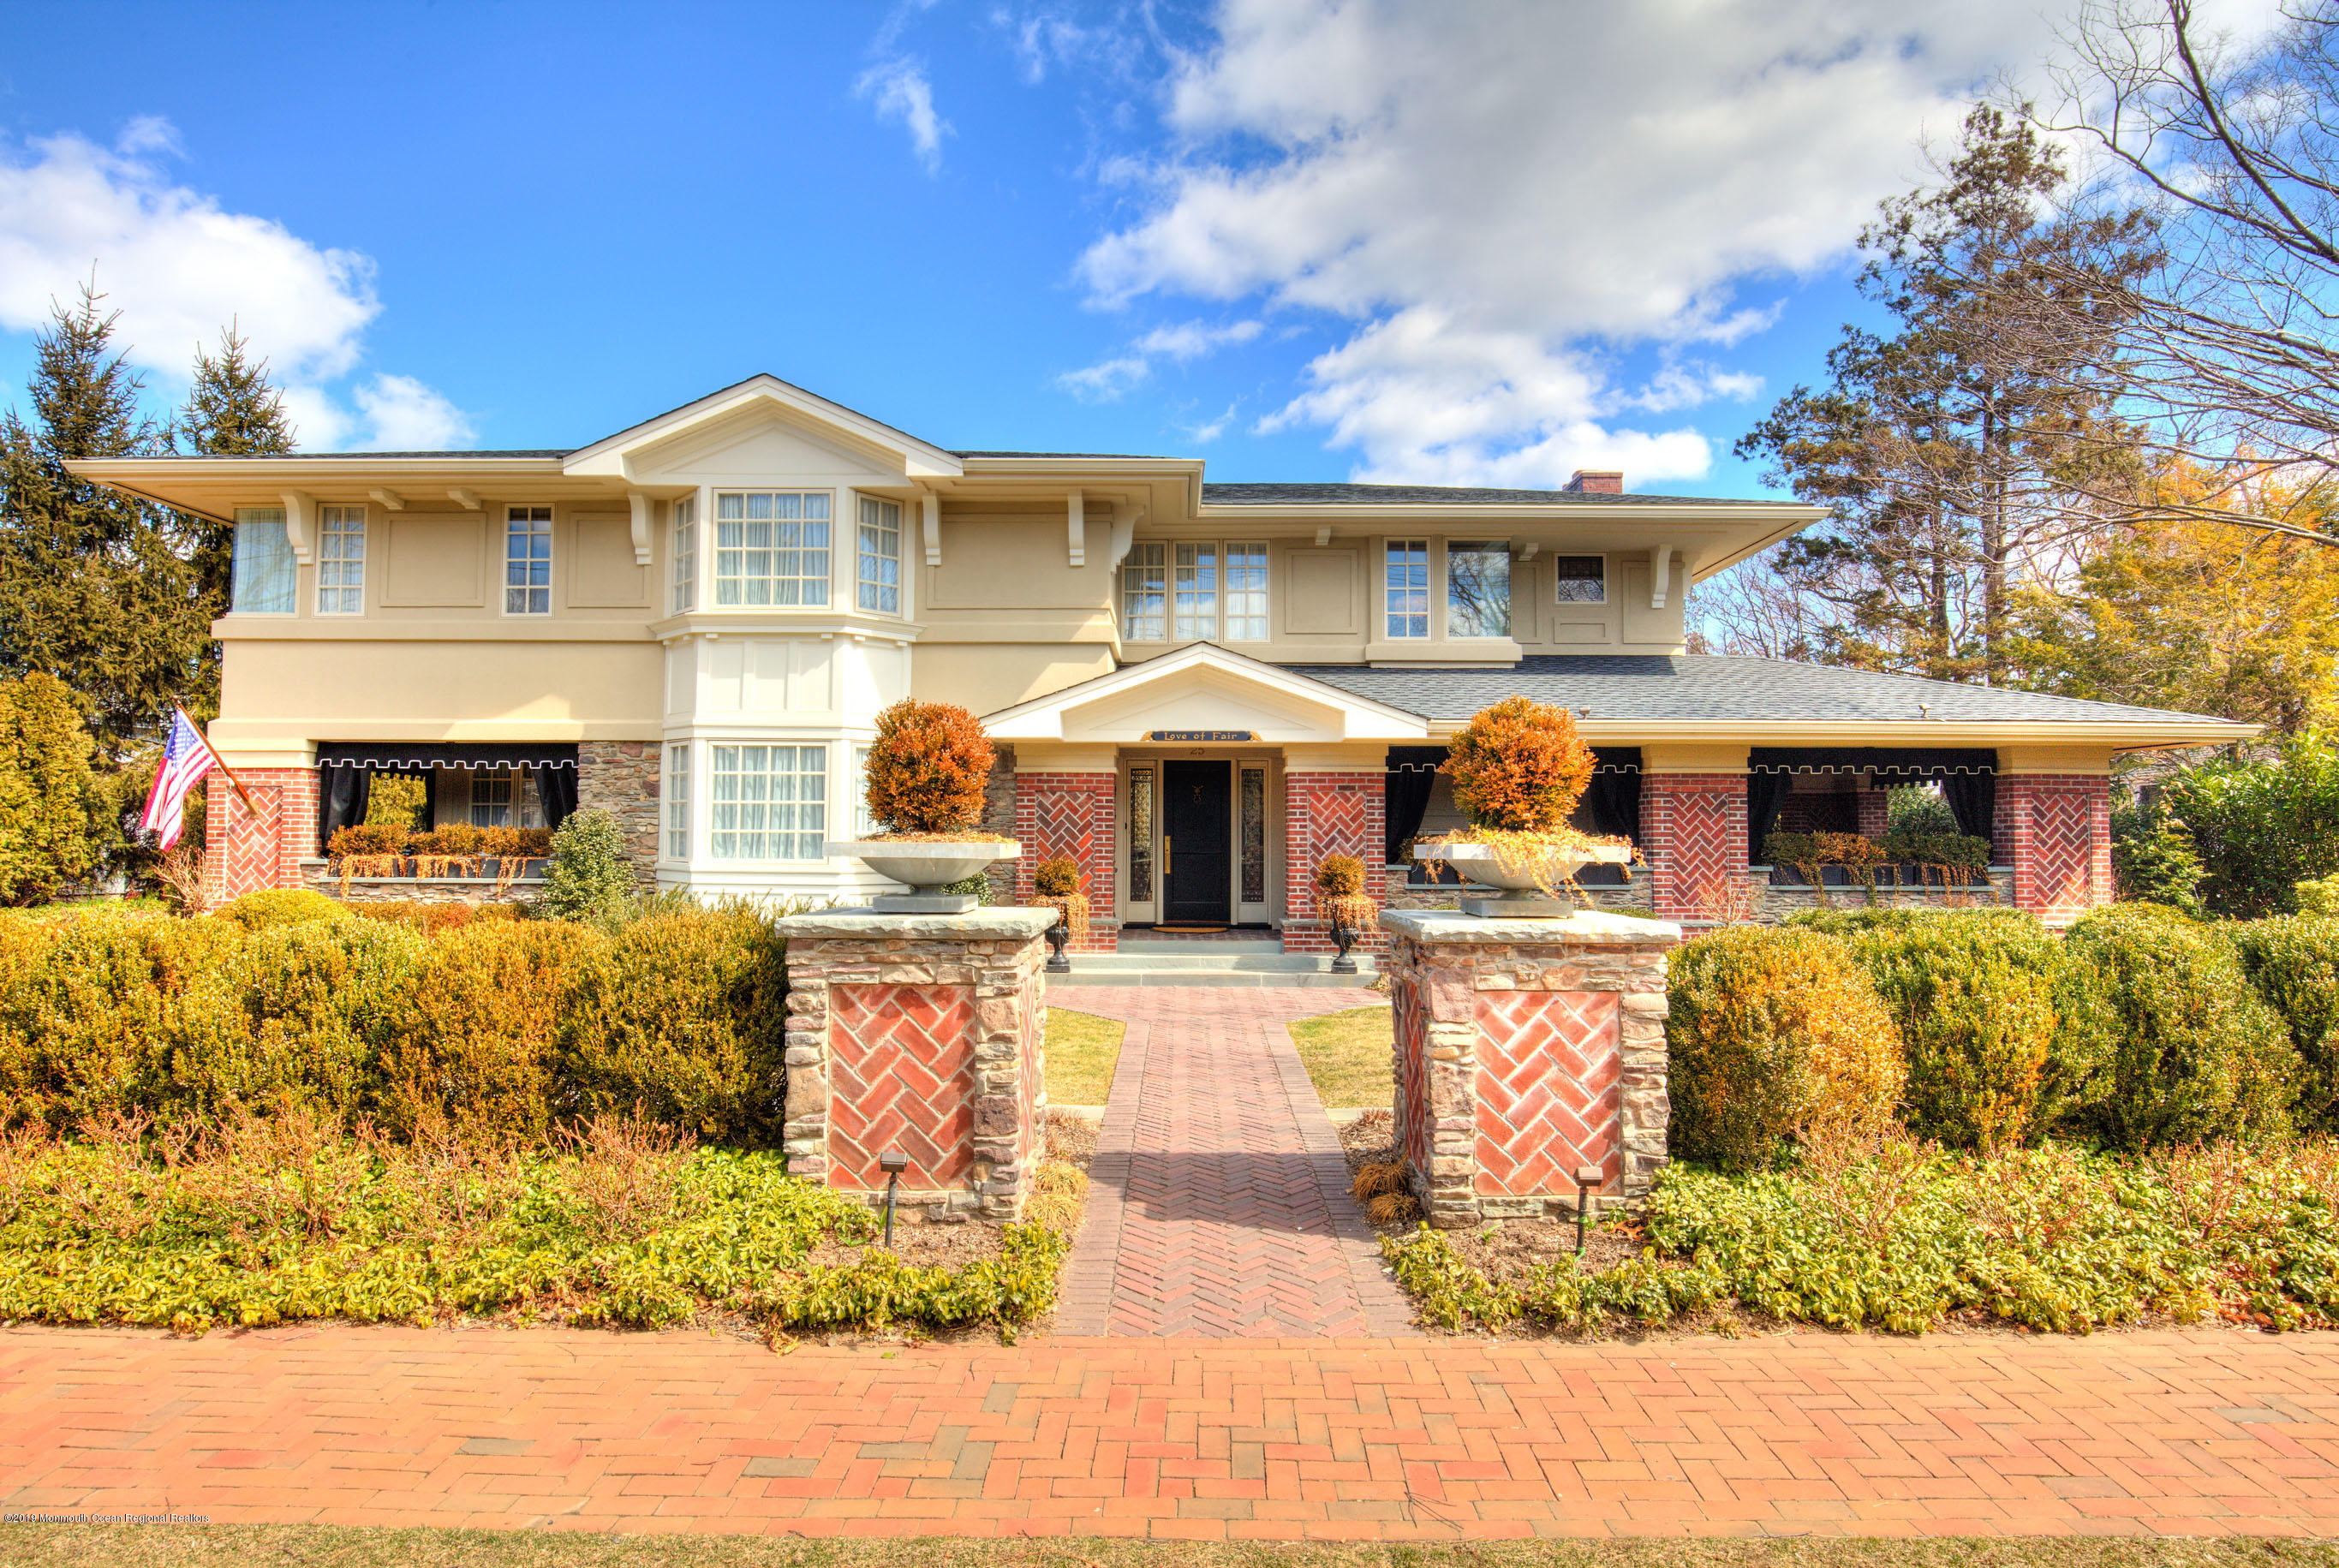 25 Fair Haven Road, Fair Haven, New Jersey